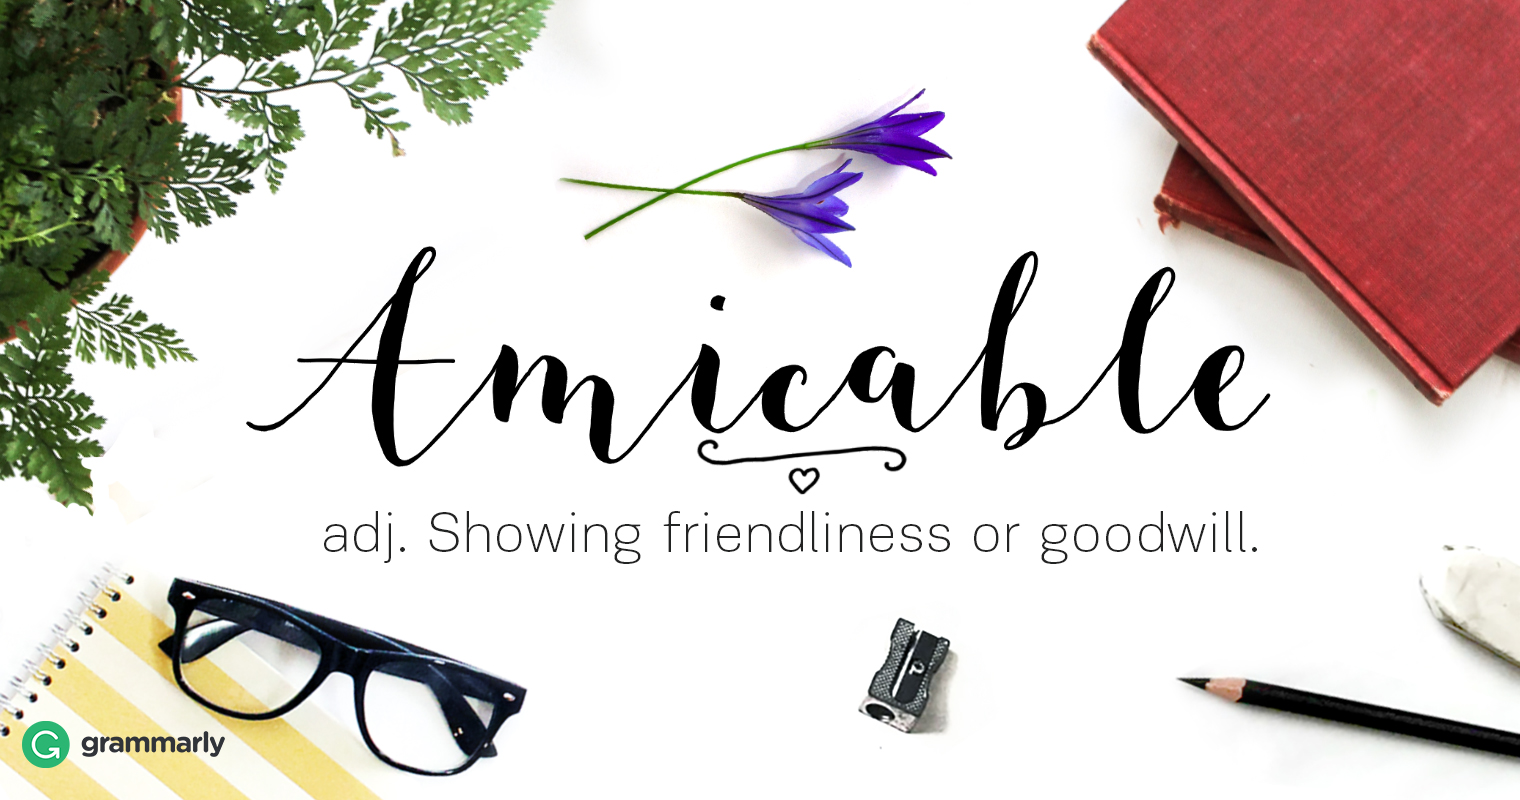 amicable adj. 1.Showing friendliness or goodwill.